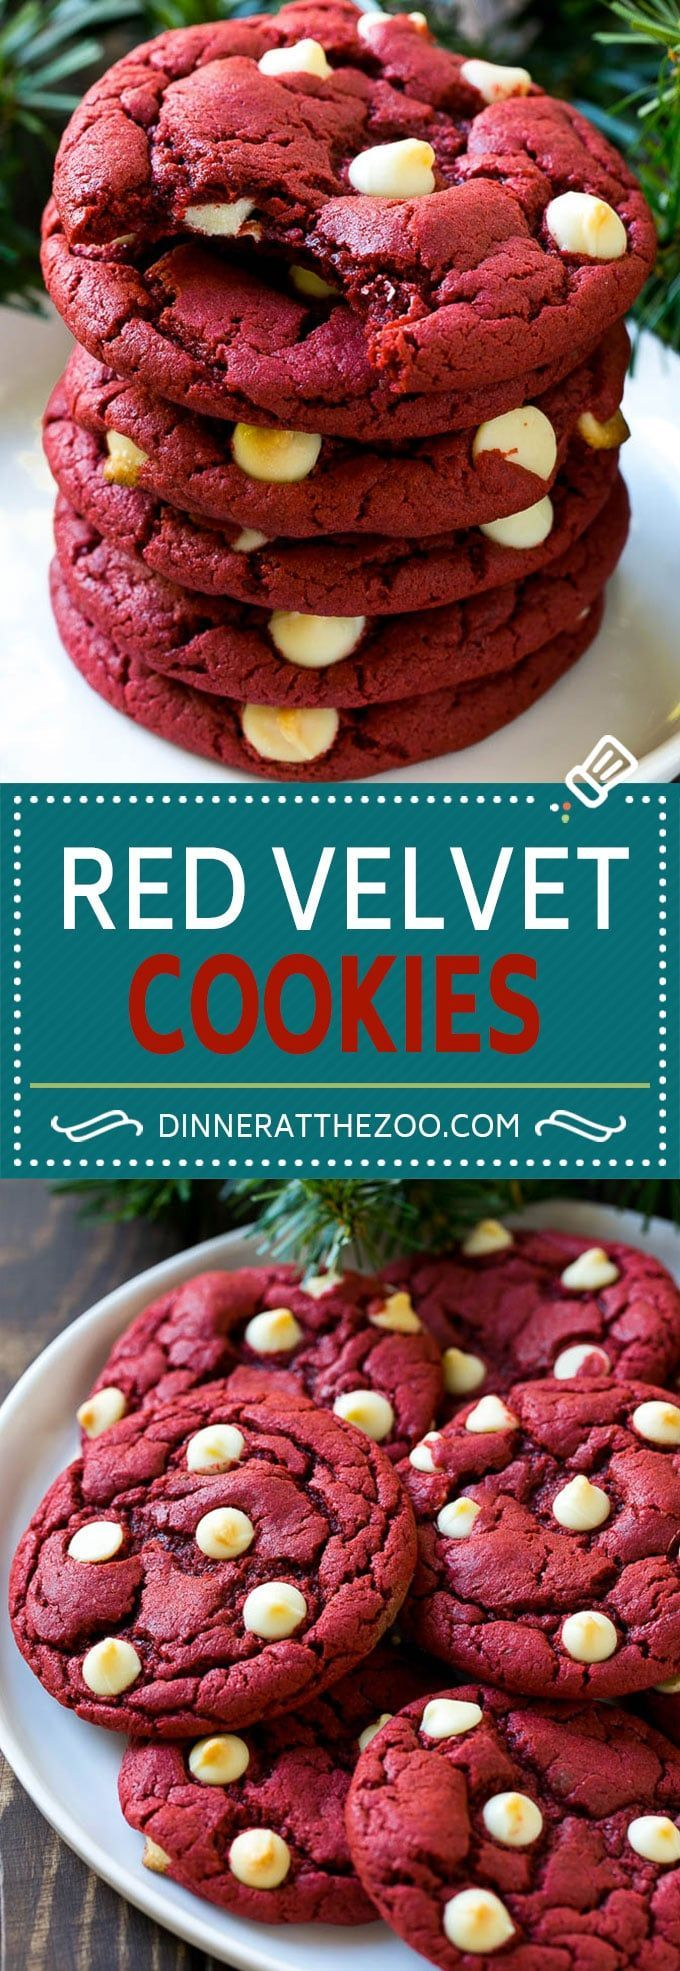 1308 best GALLETAS images on Pinterest | Cookies, Petit fours and Cakes